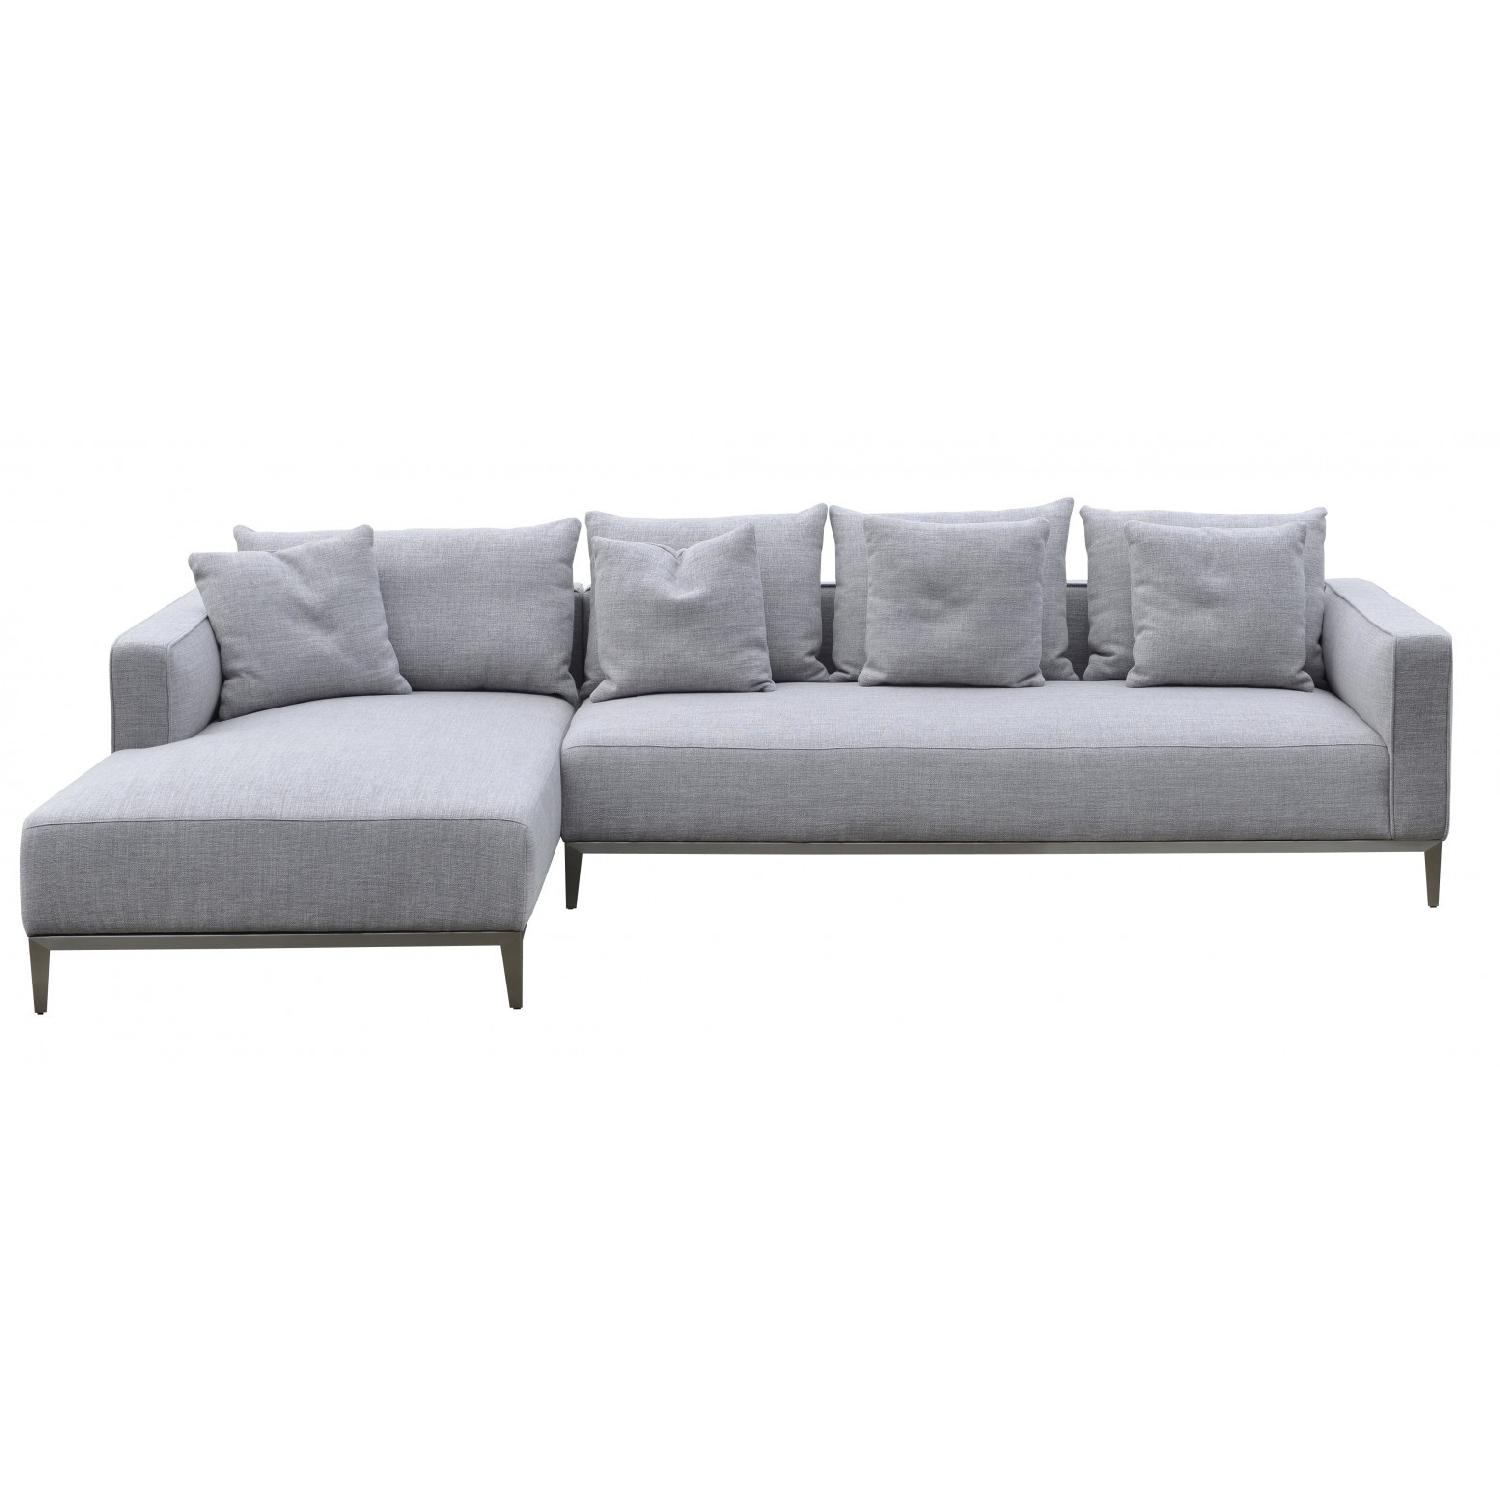 sohoConcept California Large Left Arm Chaise Sectional Sofa - image-0